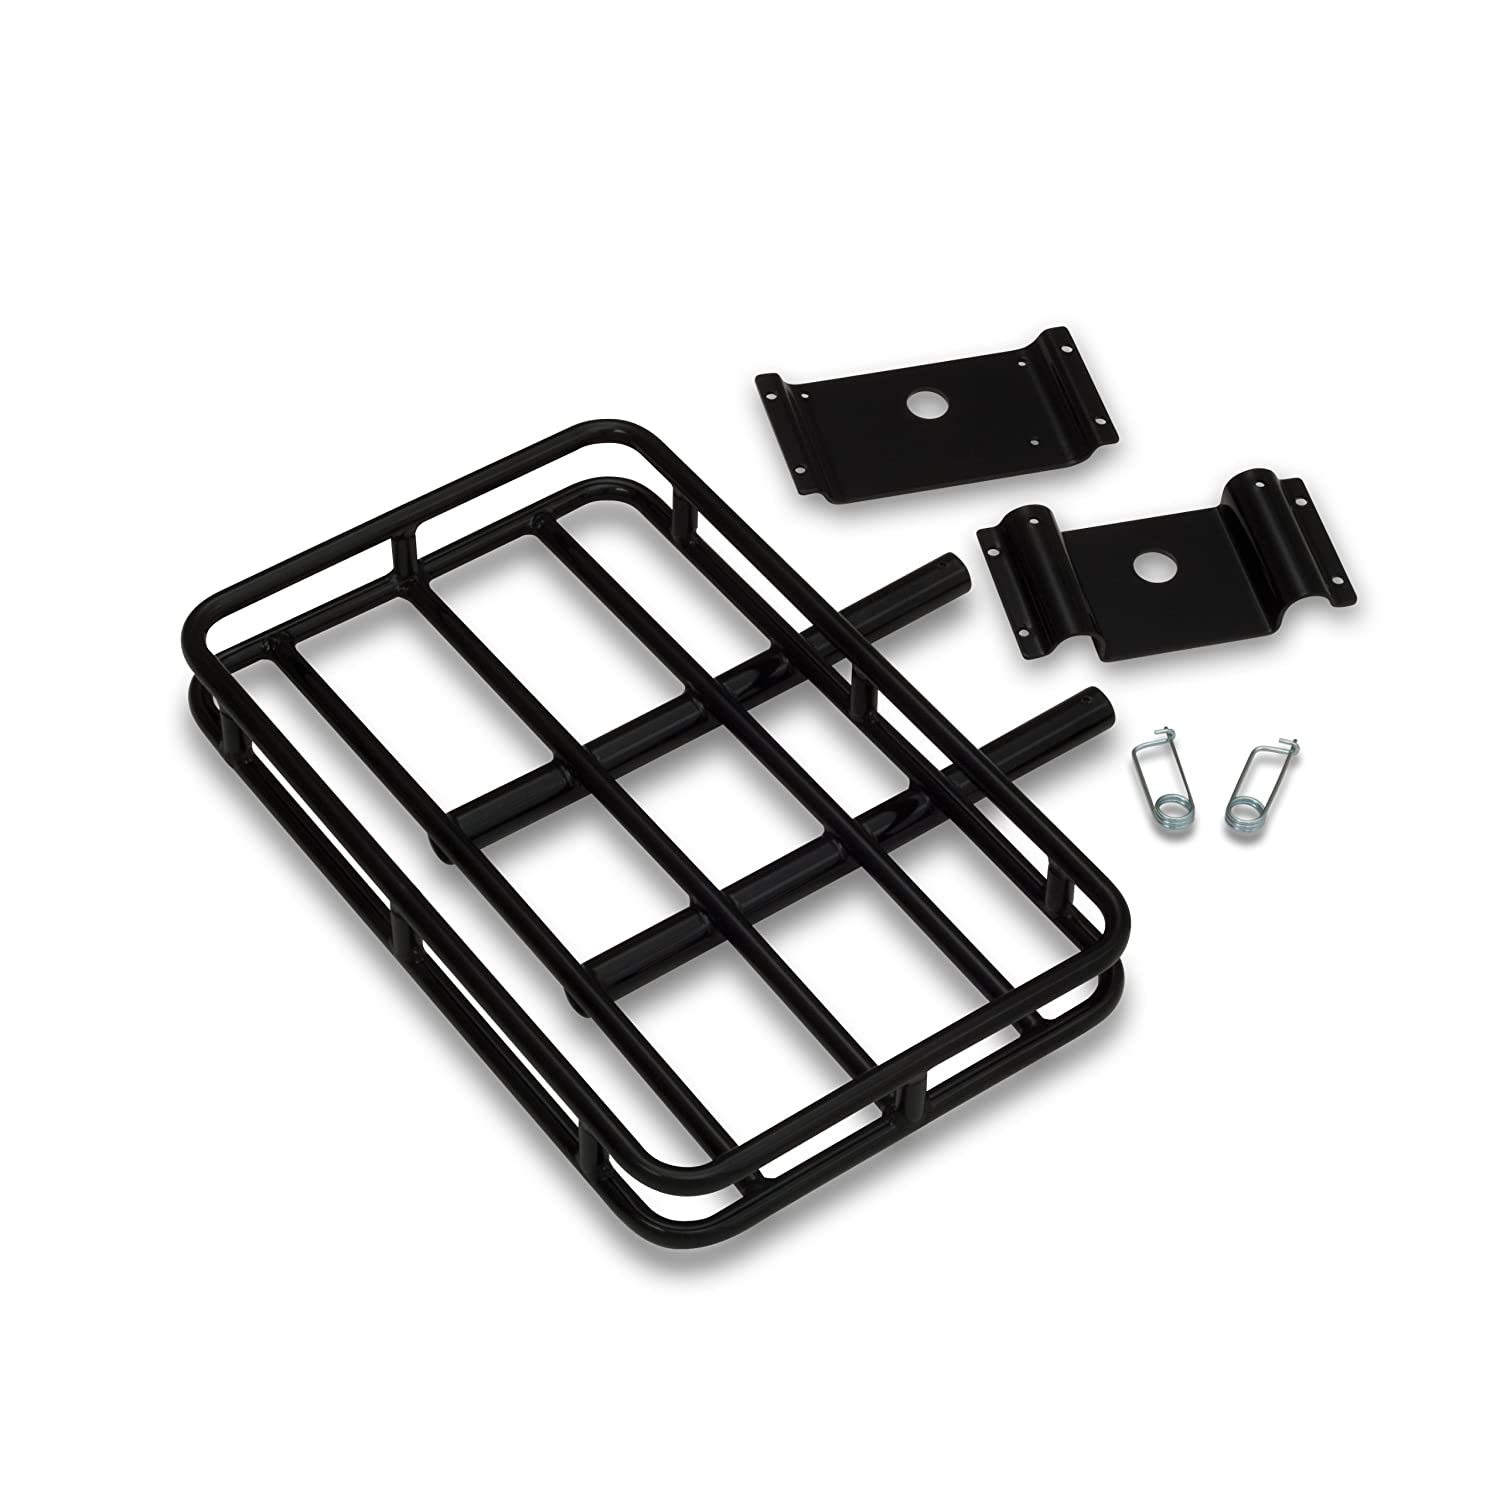 52-828 Universal Trailer Hitch Rack Show Chrome Accessories